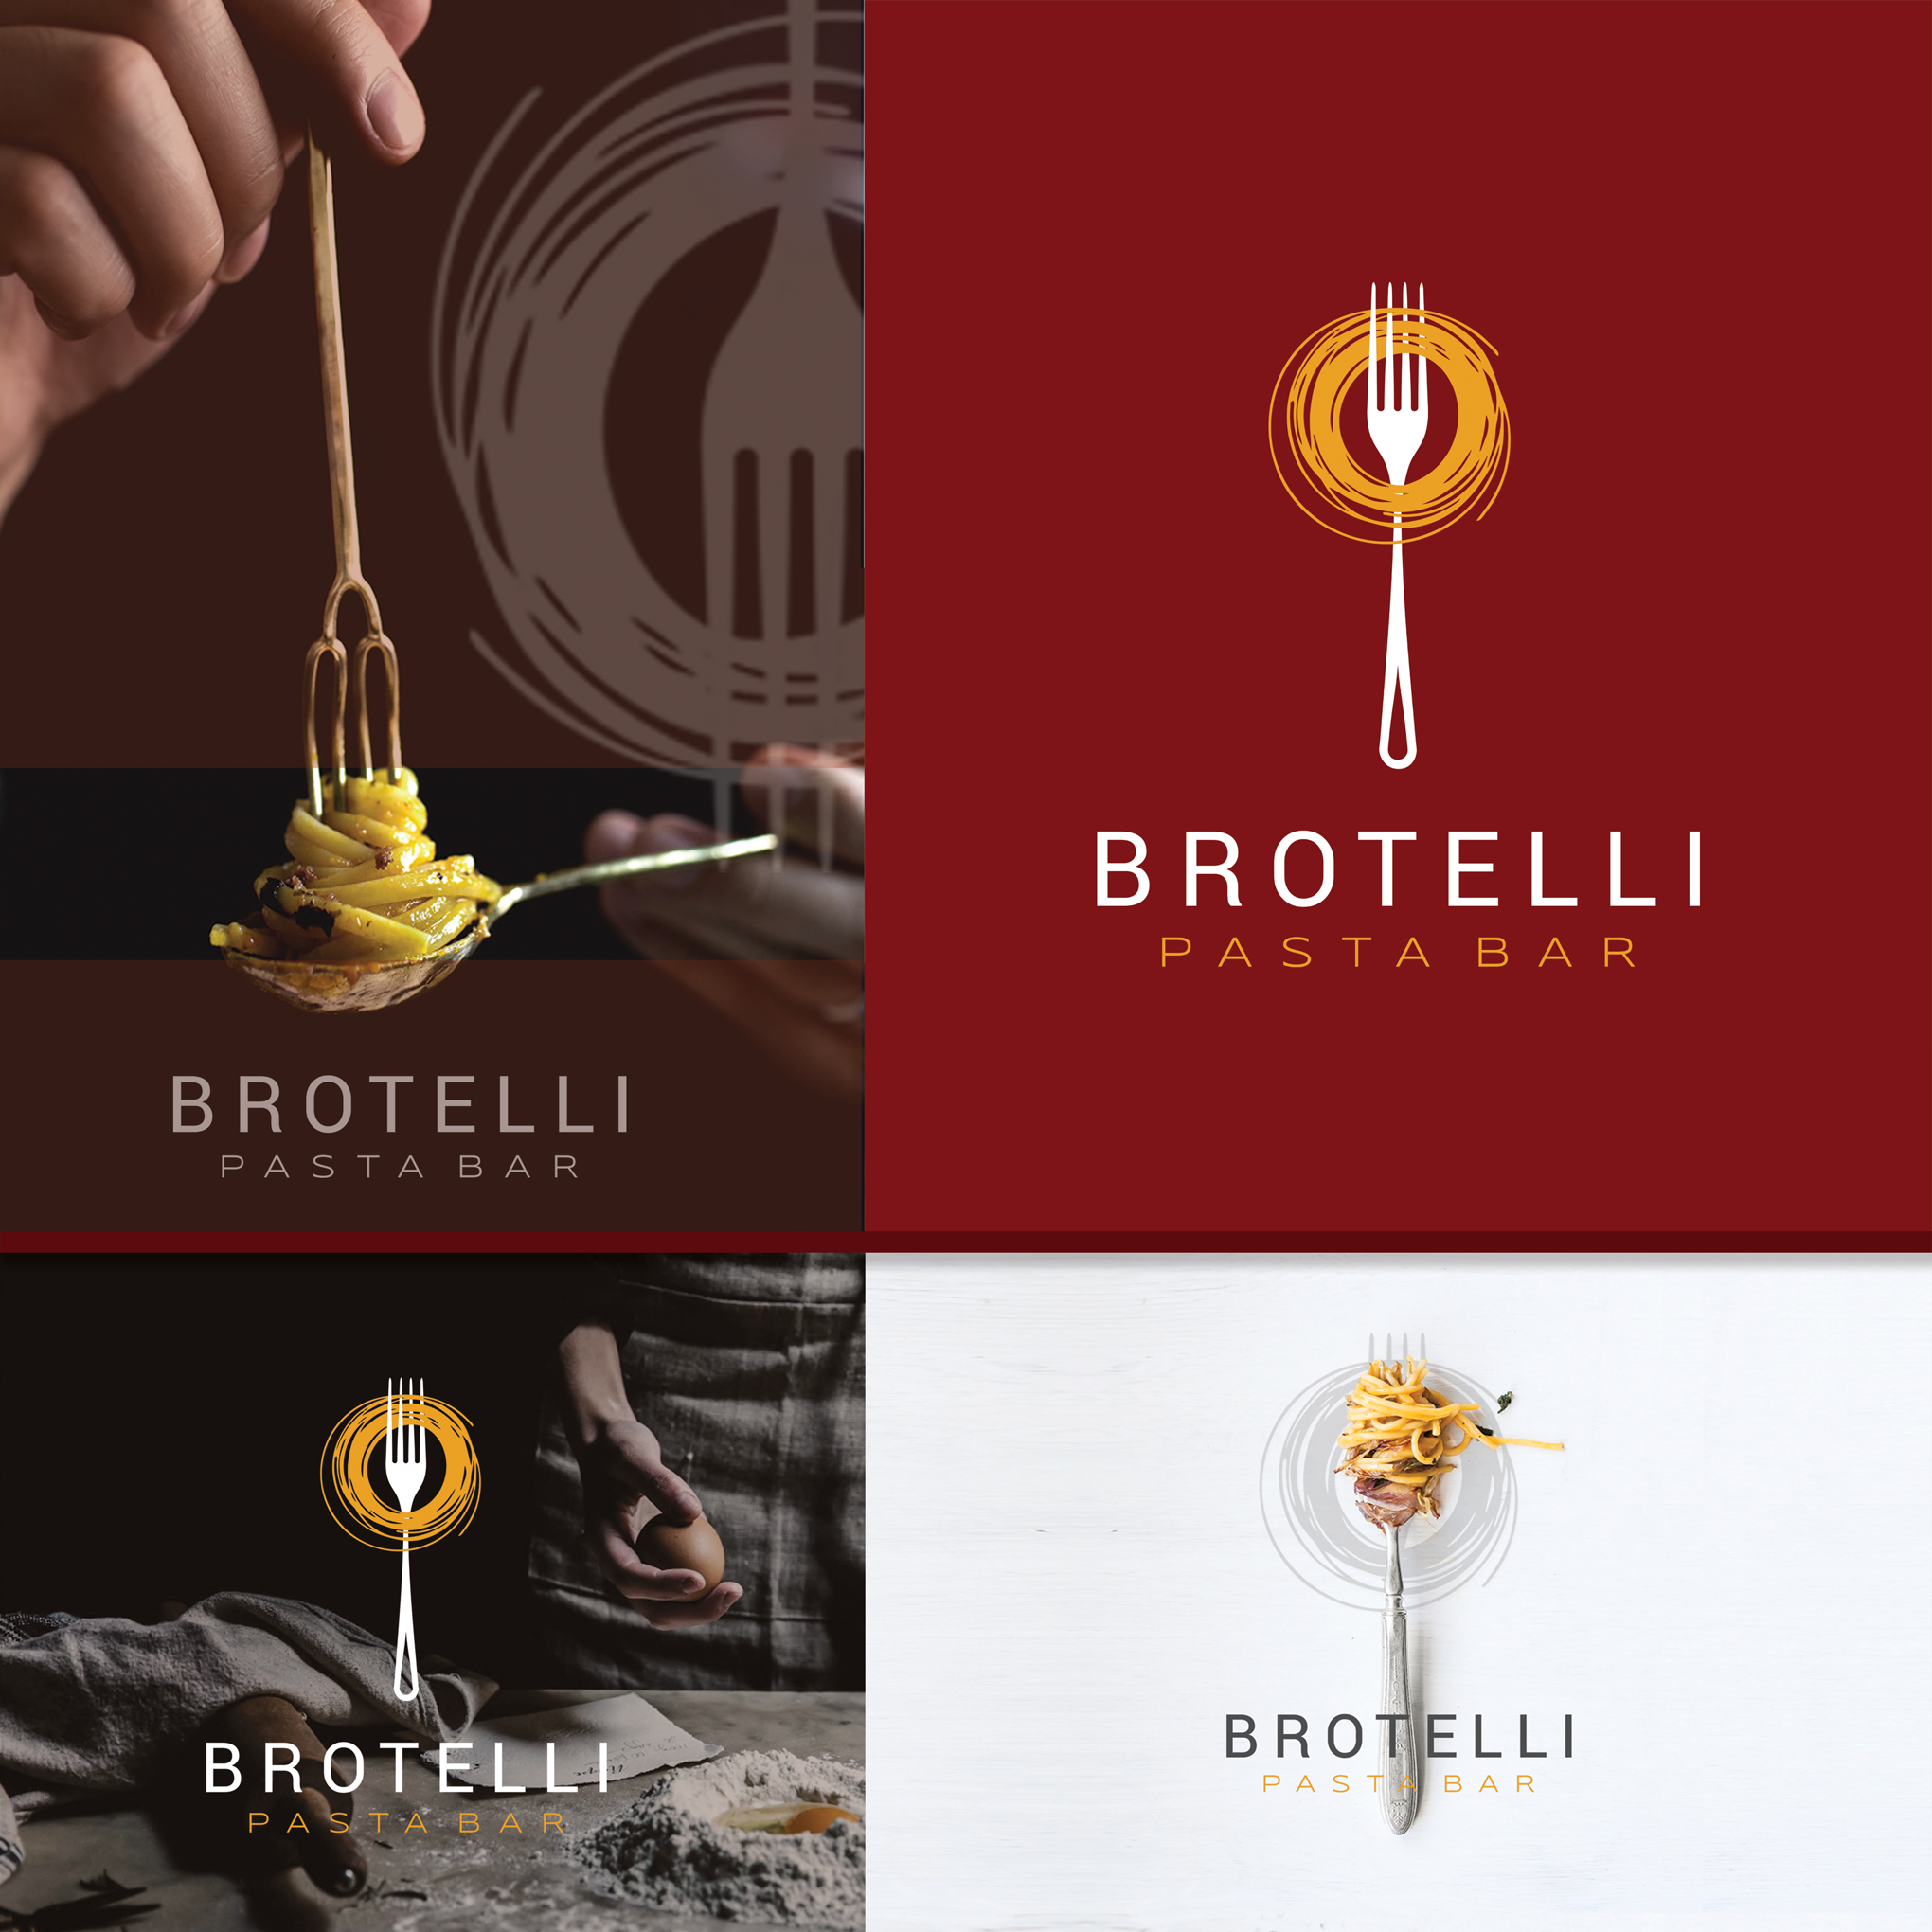 Re-work existing logo and box design